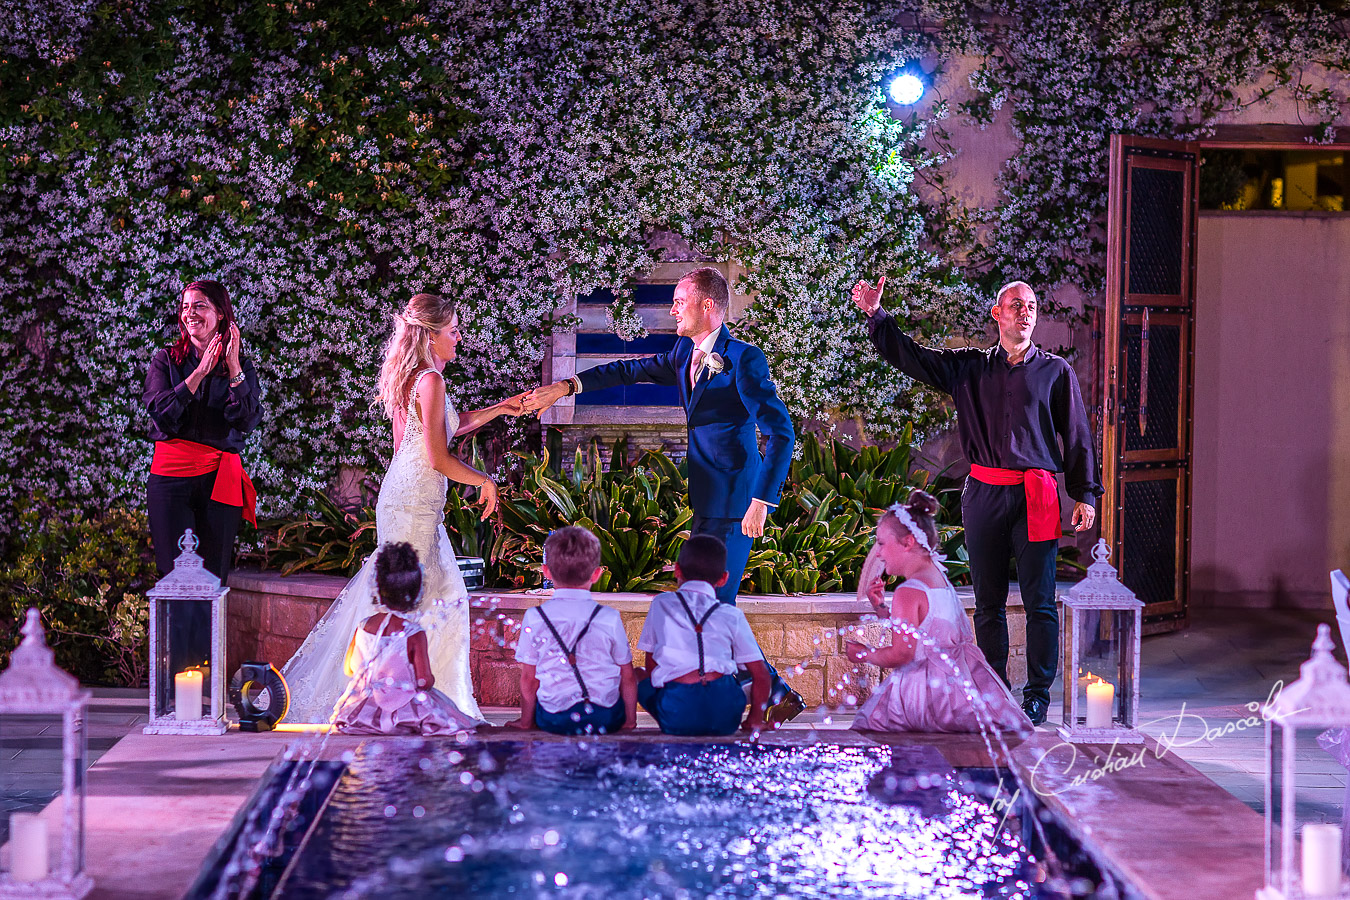 Wedding dinner moments captured by Cristian Dascalu at a wedding at The Aphrodite Hills Resort in Paphos, Cyprus.